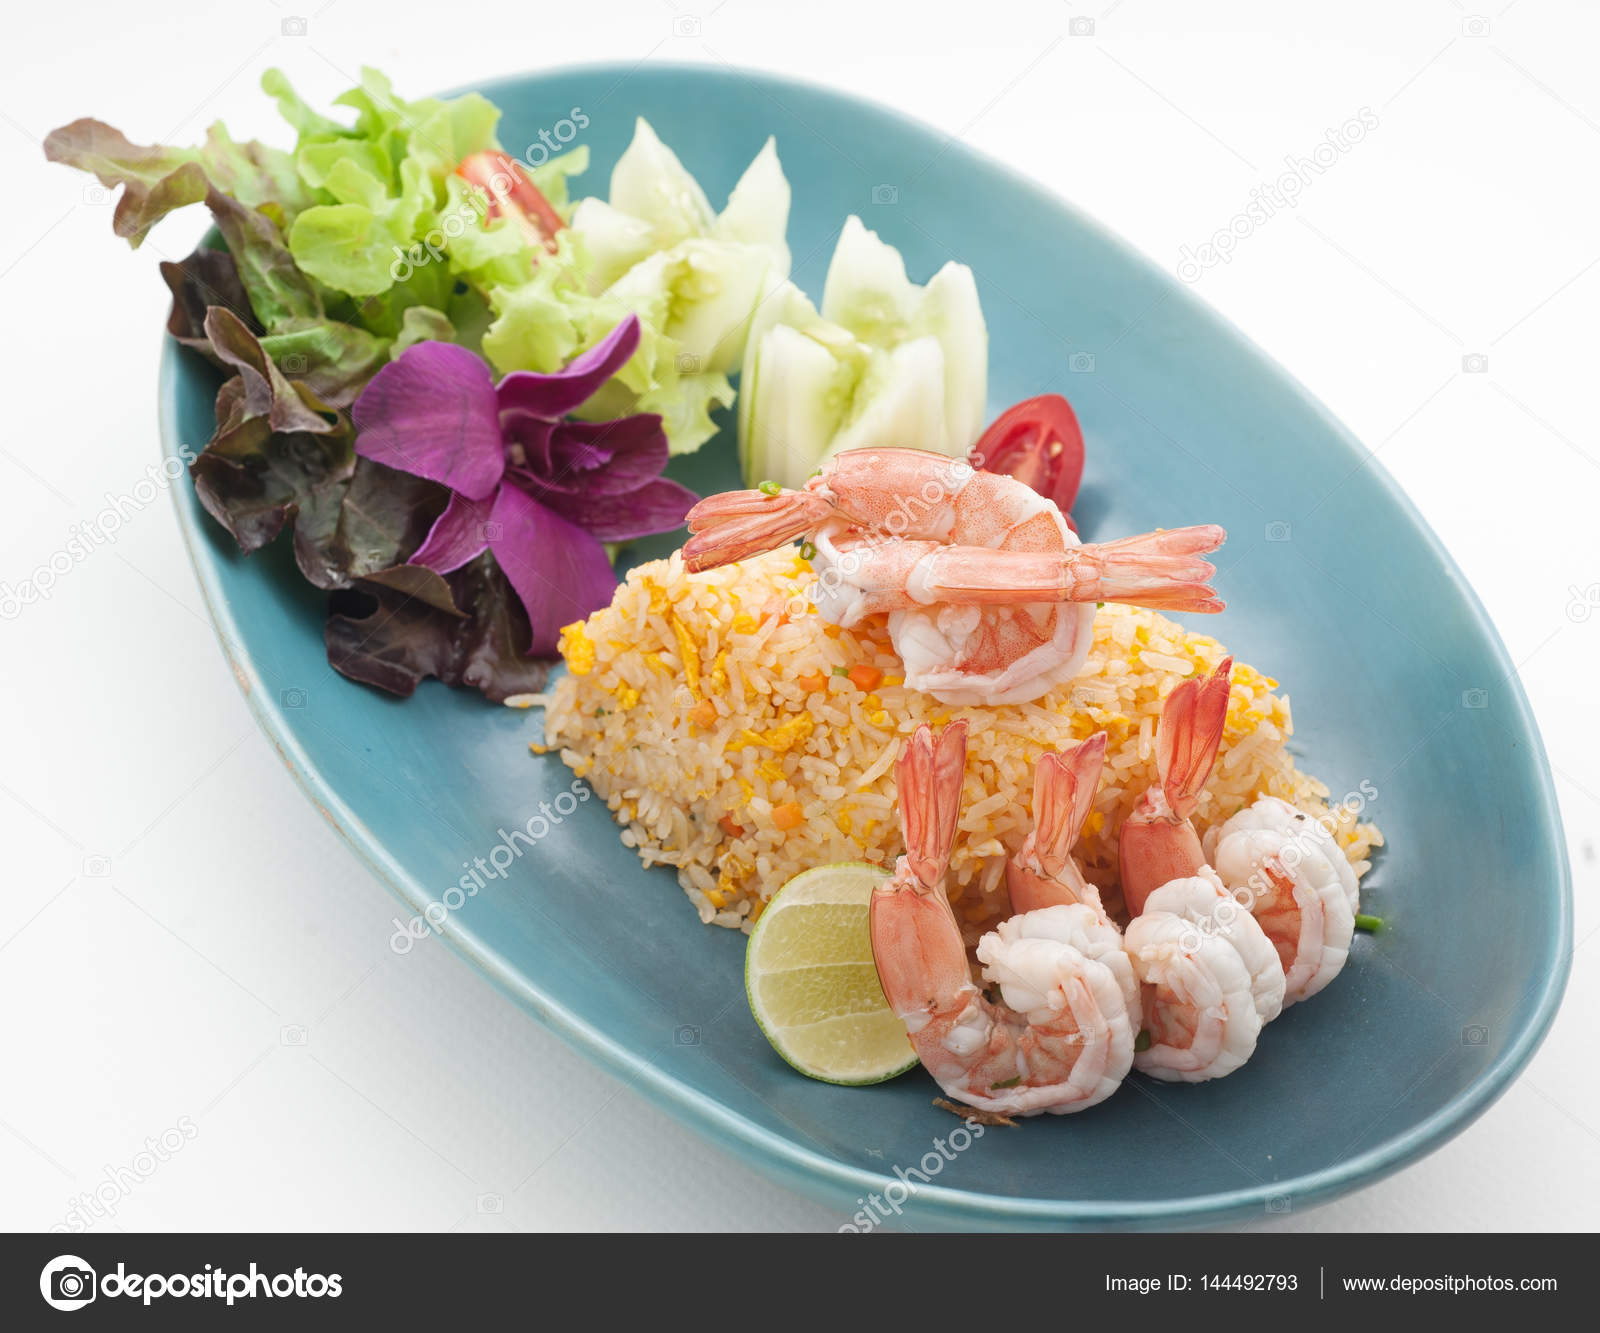 Dishes of Thailand and China international cuisine in restaurant